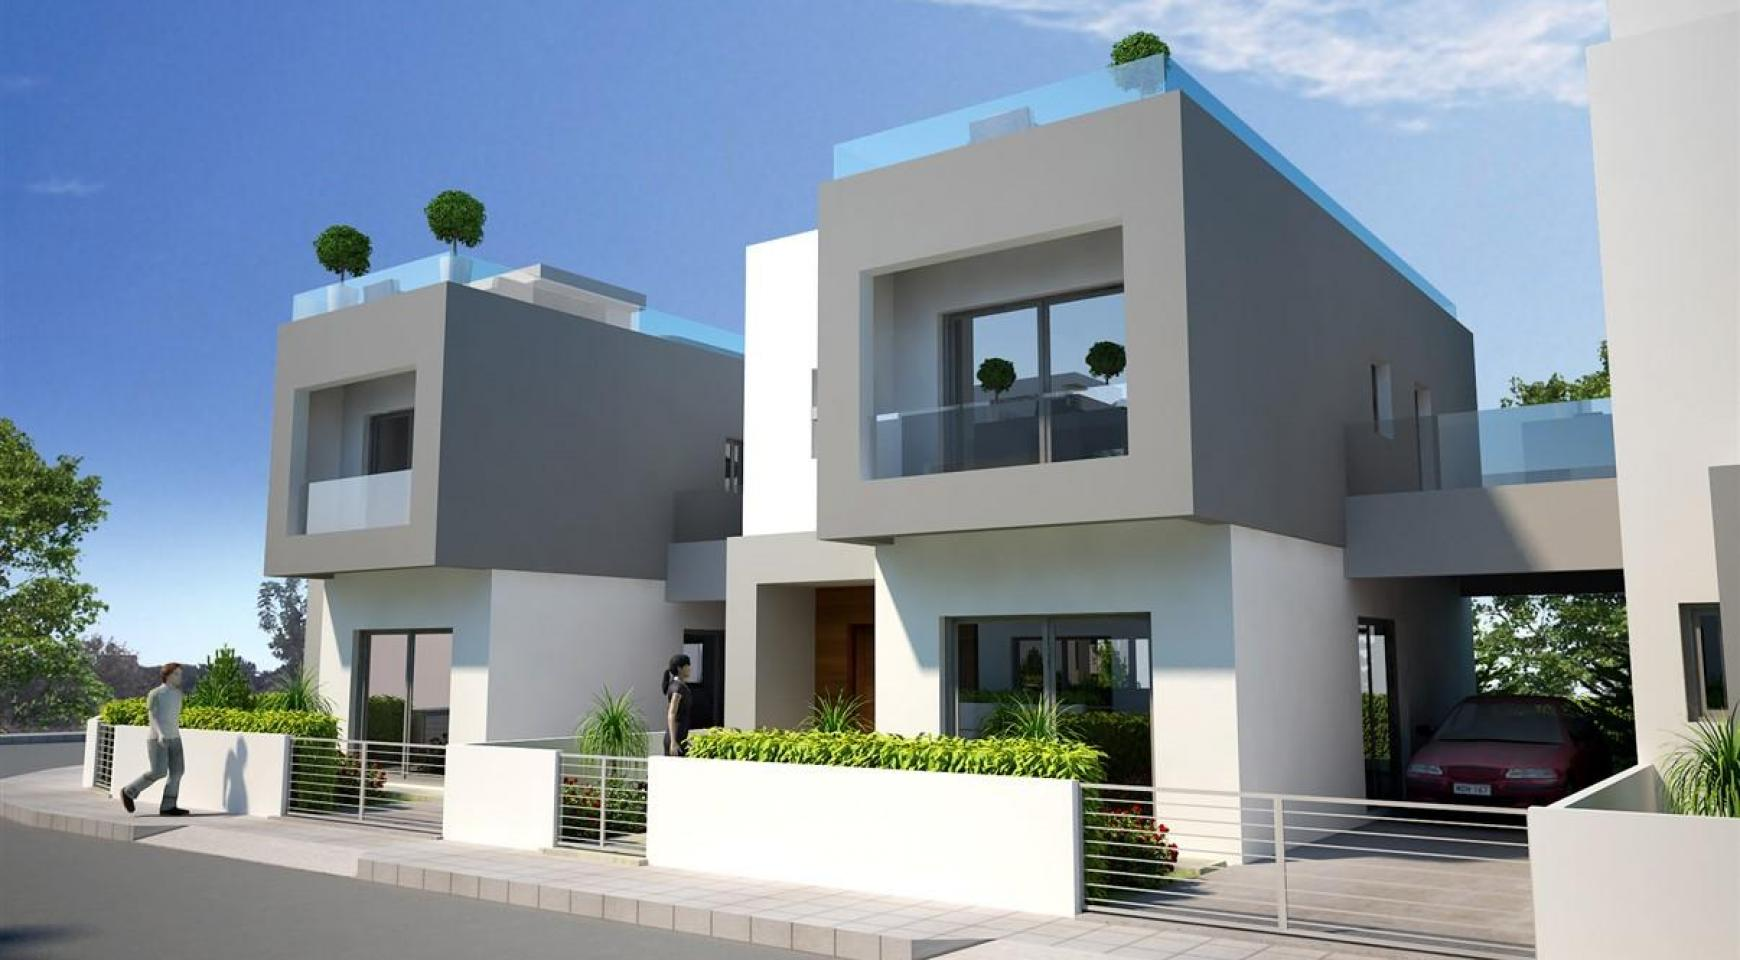 3 Bedroom Villa in New Project in Paphos - 33